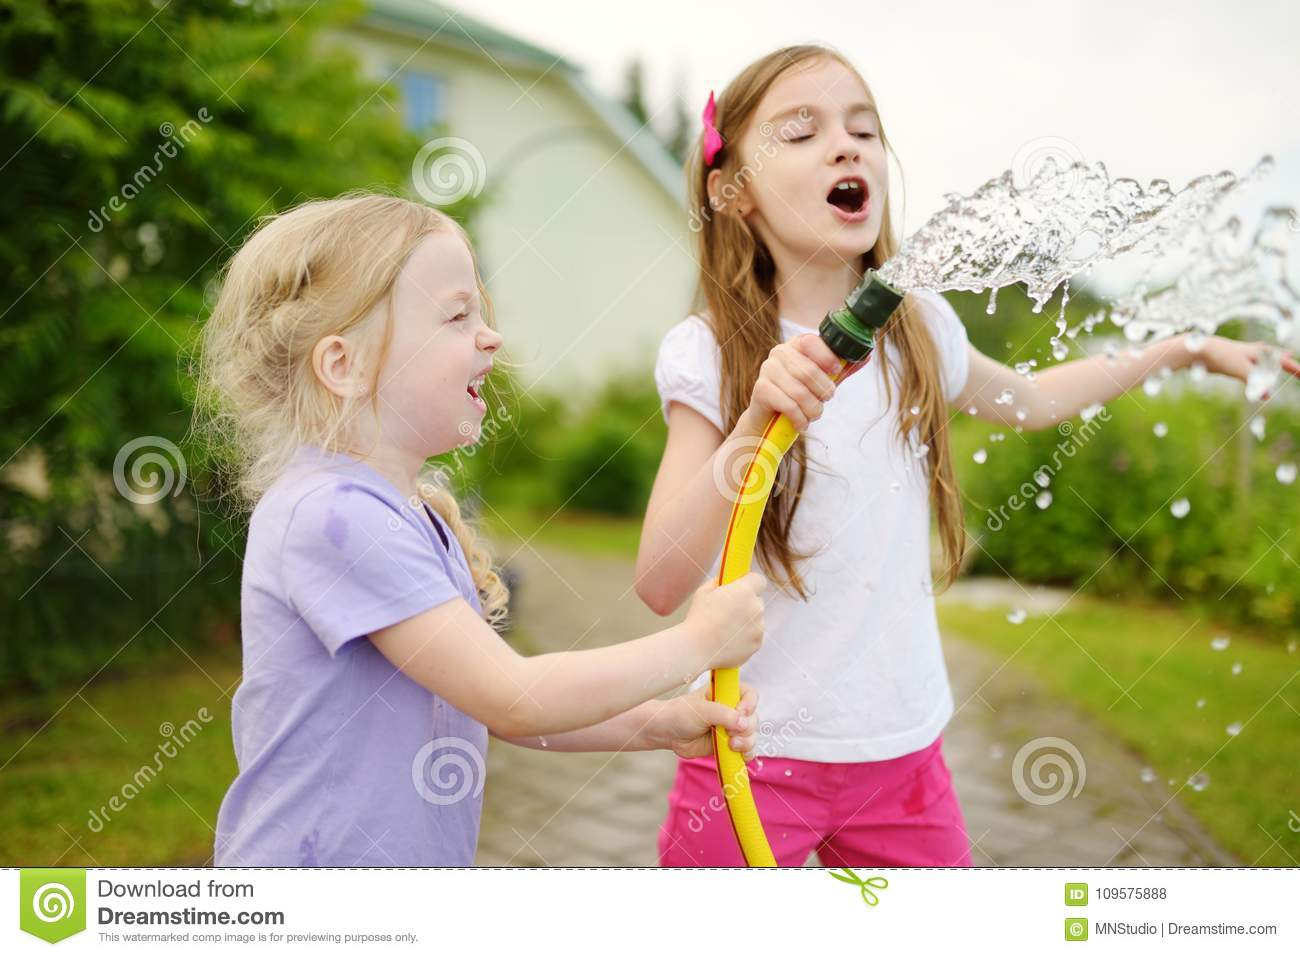 Adorable little girls playing with a garden hose on warm summer day